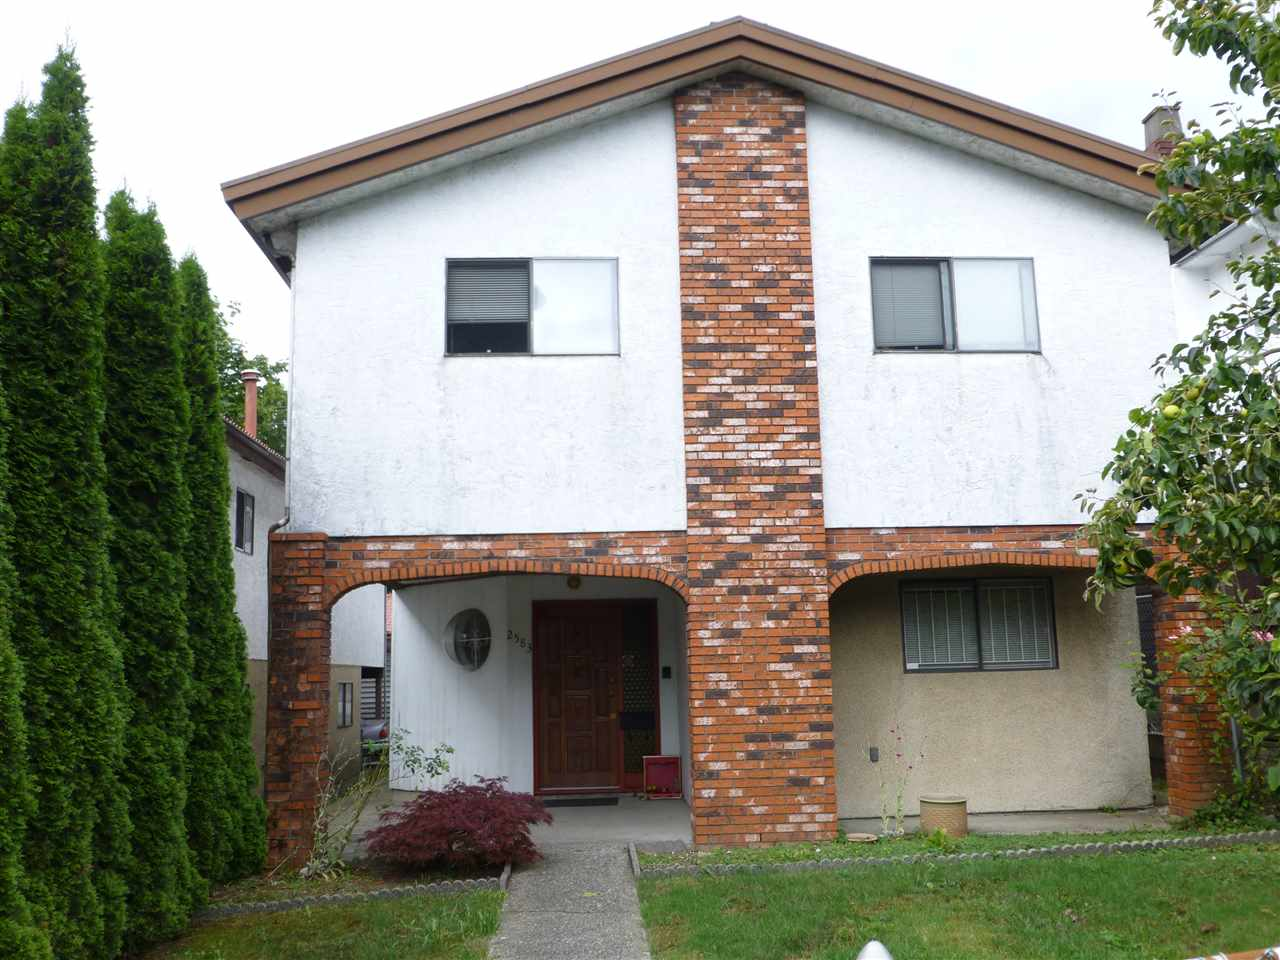 Main Photo: 2583 RENFREW Street in Vancouver: Renfrew VE House for sale (Vancouver East)  : MLS® # R2094540